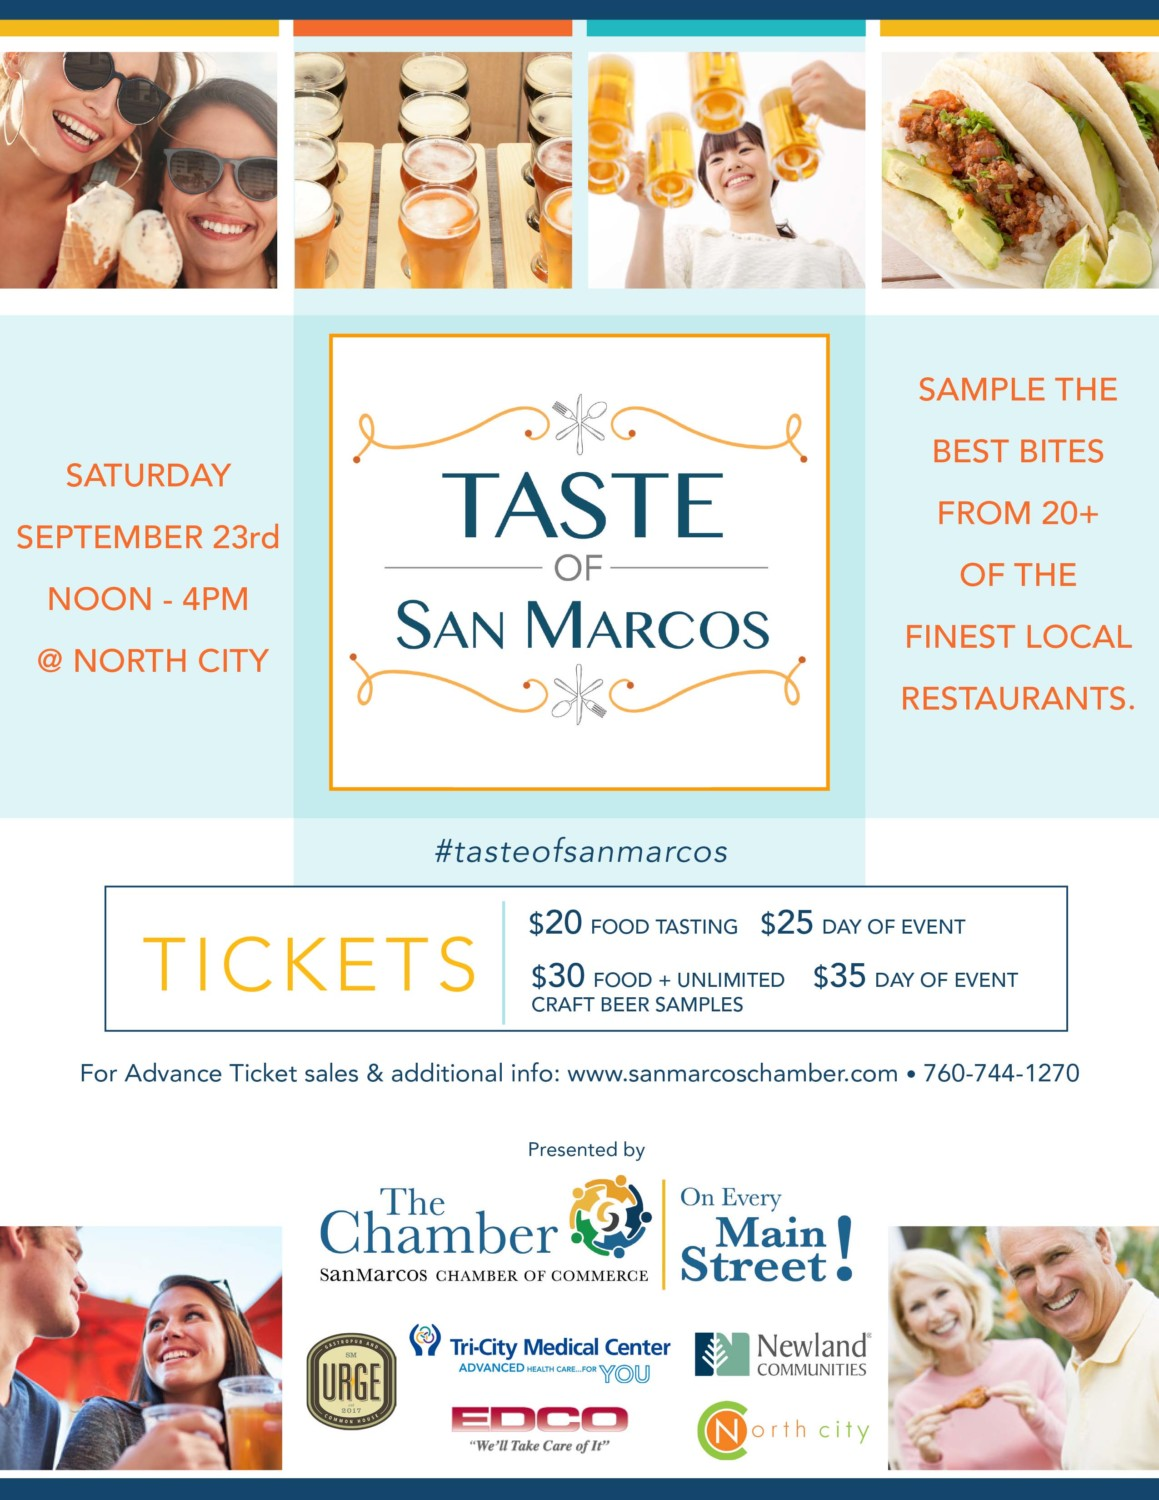 Lick the Plate: Taste of San Marcos is back featuring a burgeoning restaurant scene